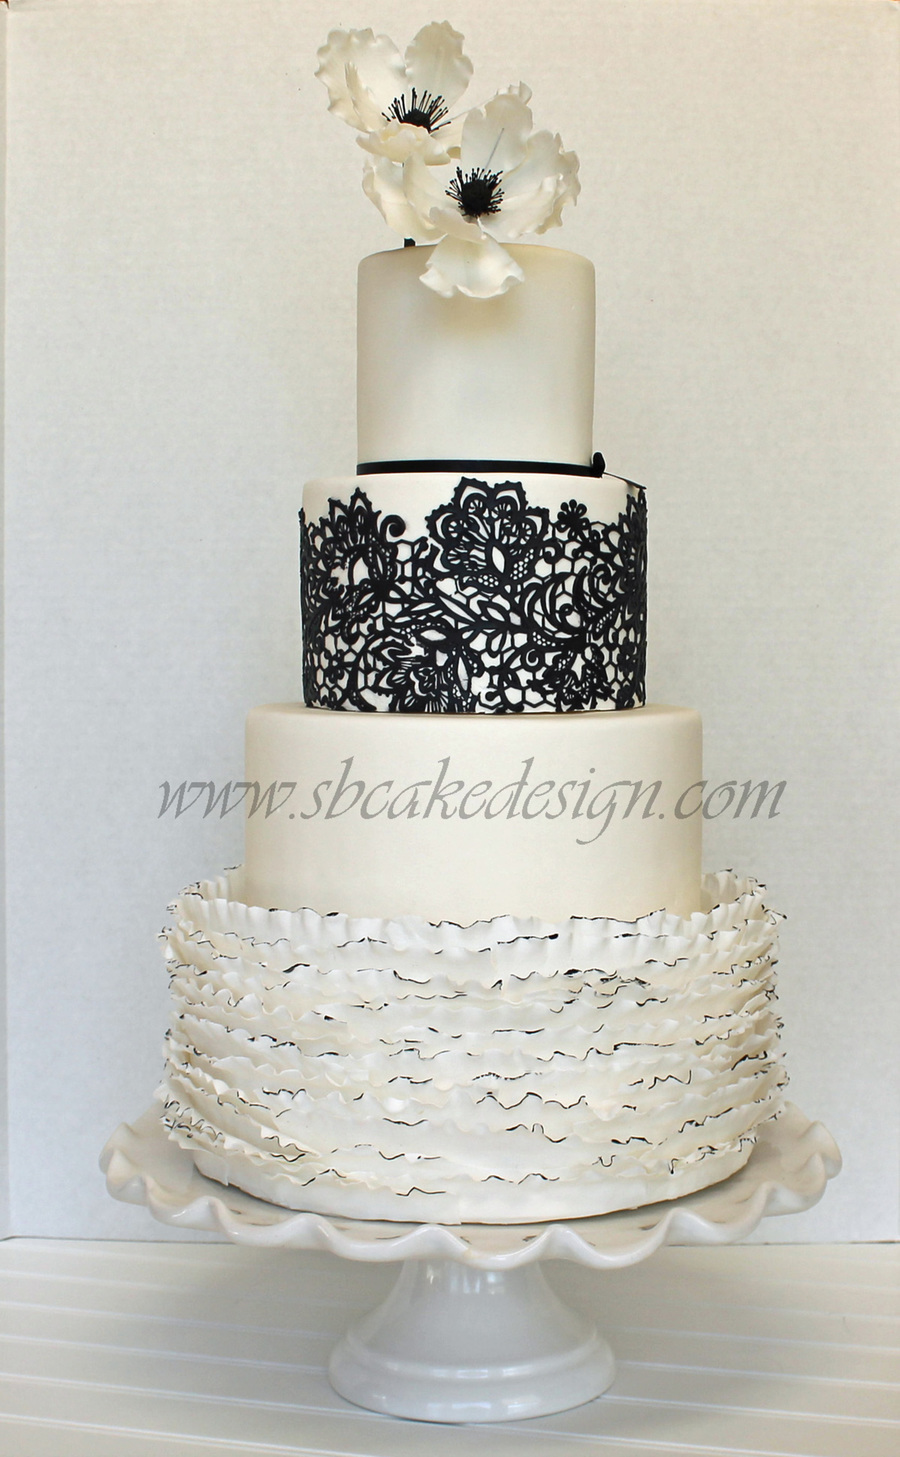 simple black and white wedding cakes black and white wedding cake cakecentral 19931